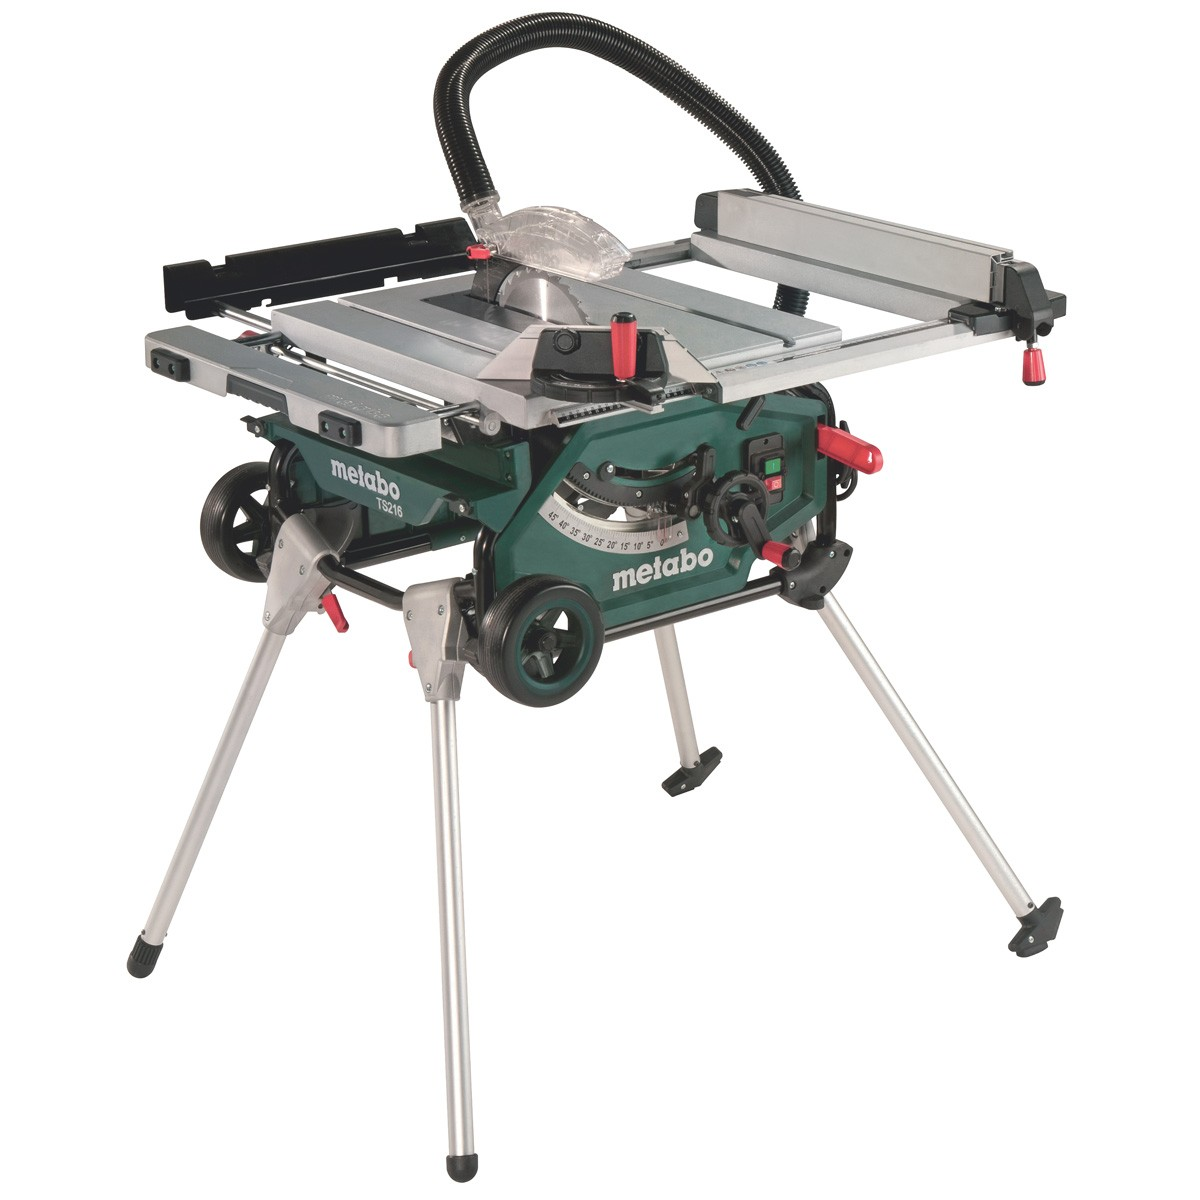 Metabo TS 216 Floor Table Circular Saw with Base Frame / Trolley 240v